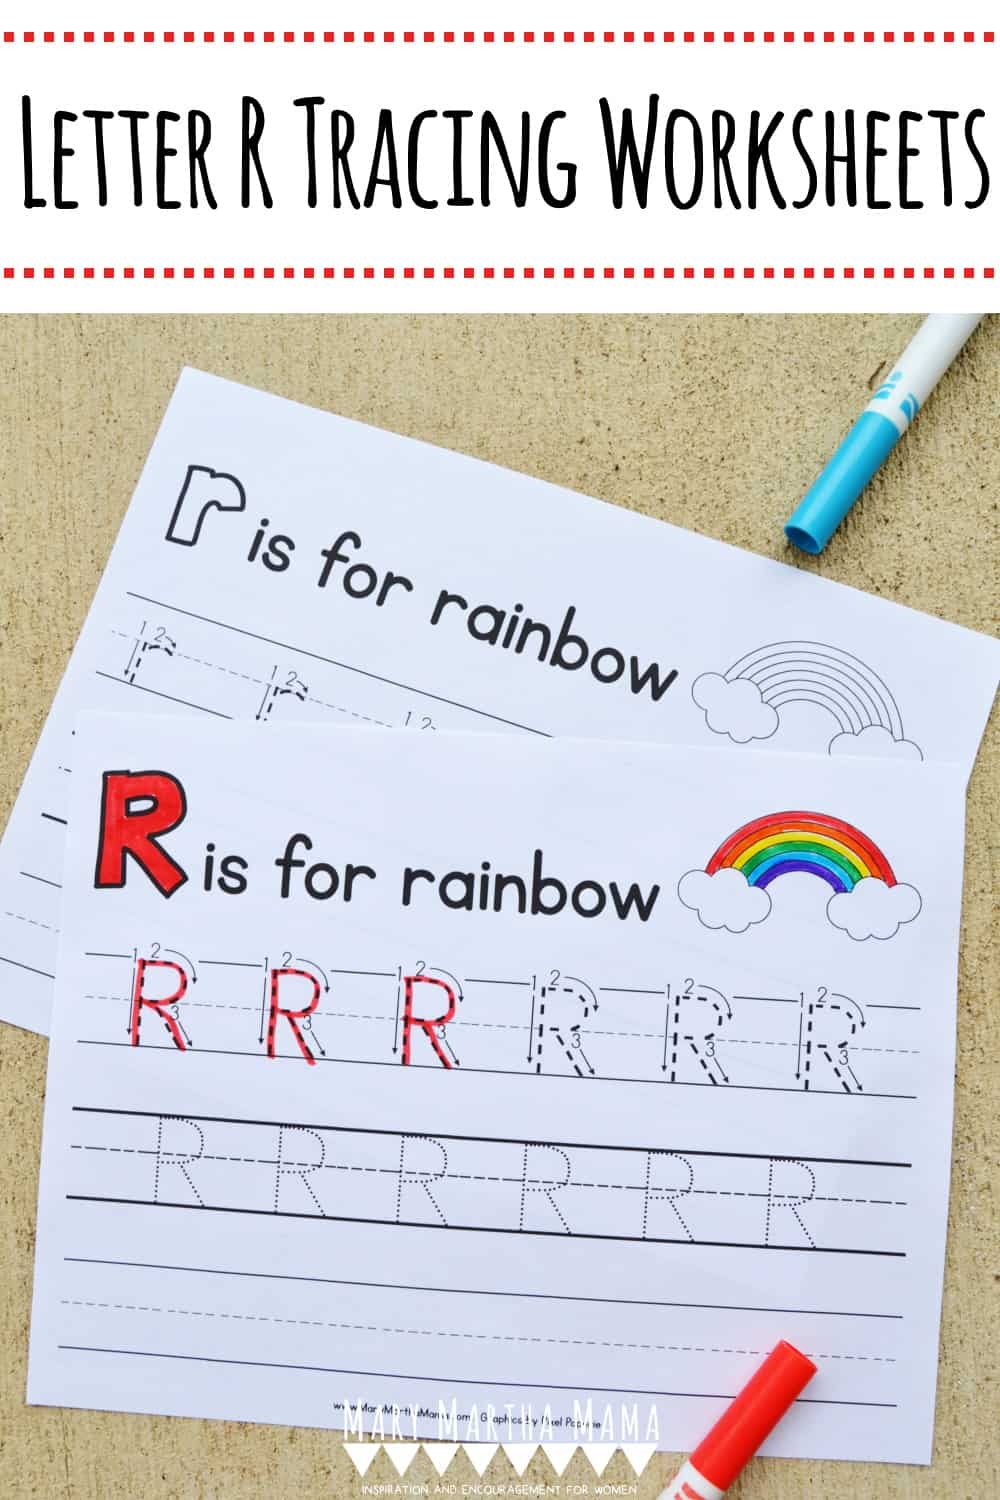 Use these free printable Letter R Tracing Worksheets to help your kiddo learn proper letter formation for upper and lower case R.